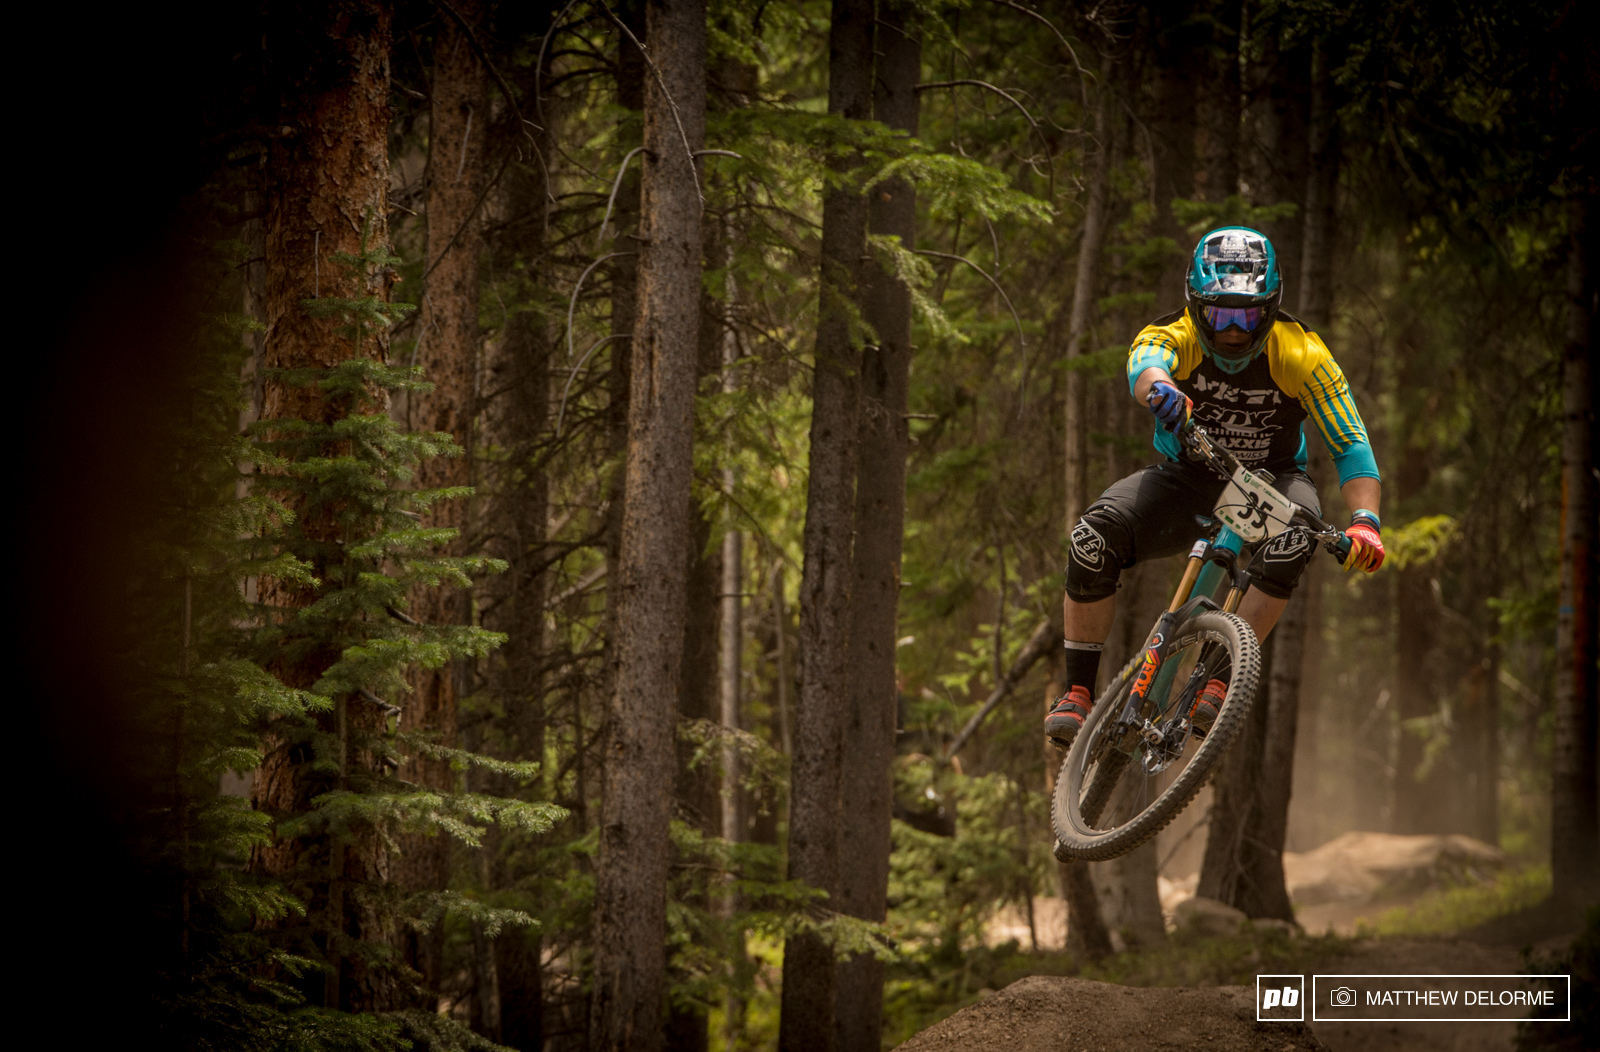 Crushingly fast. The debate whether or not Richie Rude belongs in Enduro can be put to rest. Three stage wins and second place overall. Richie Rude is just damn talented on a mountain bike.